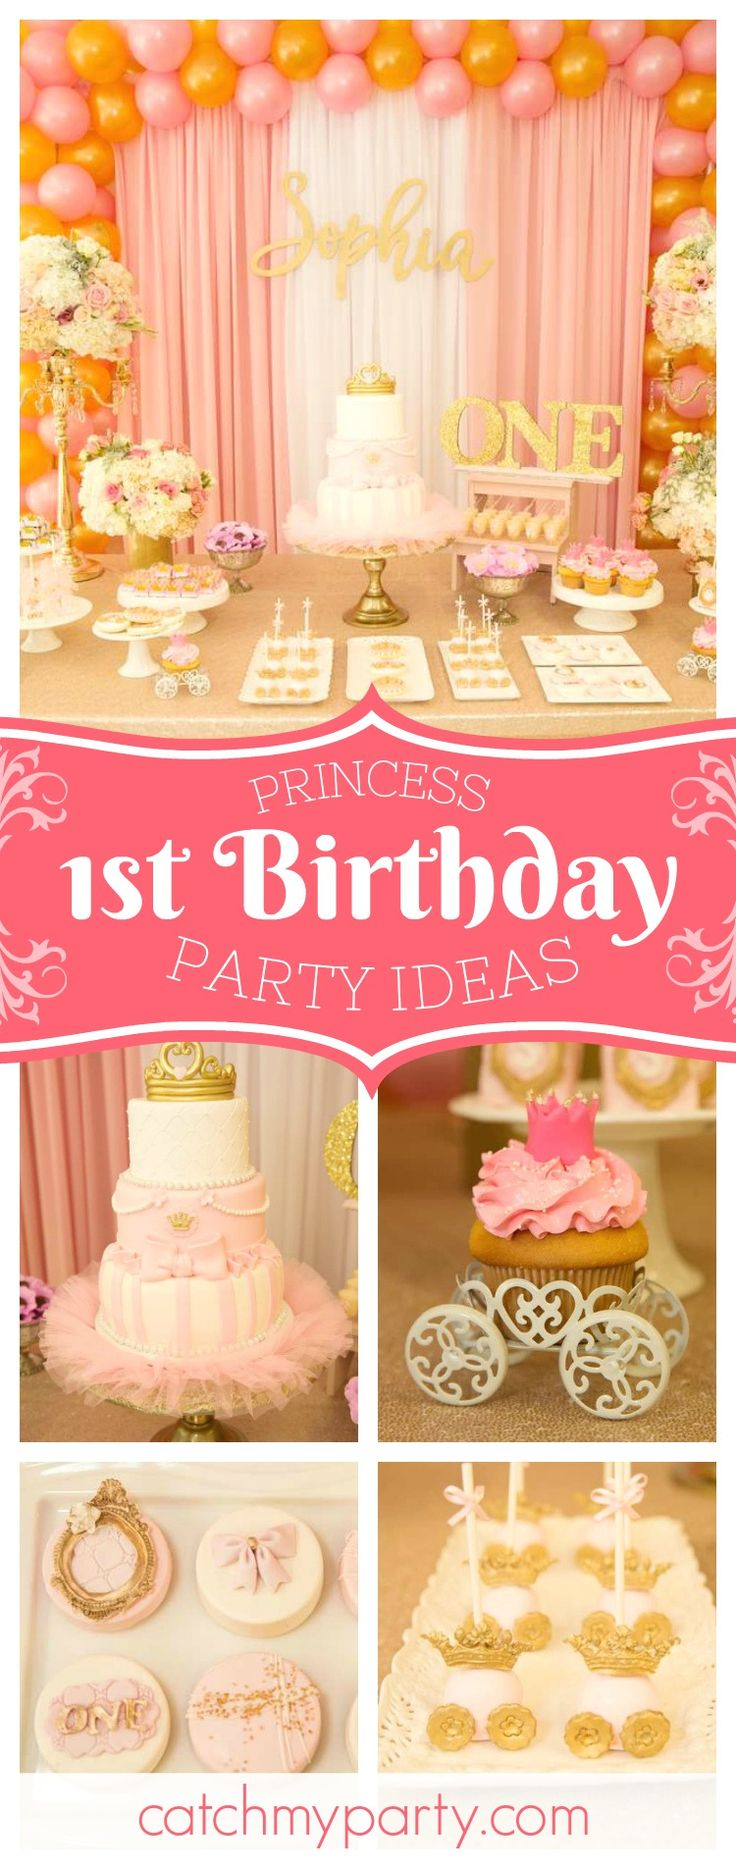 Don't miss this wonderful vintage princess birthday party! The birthday cake is stunning!! See more party ideas and share yours at CatchMyParty.com